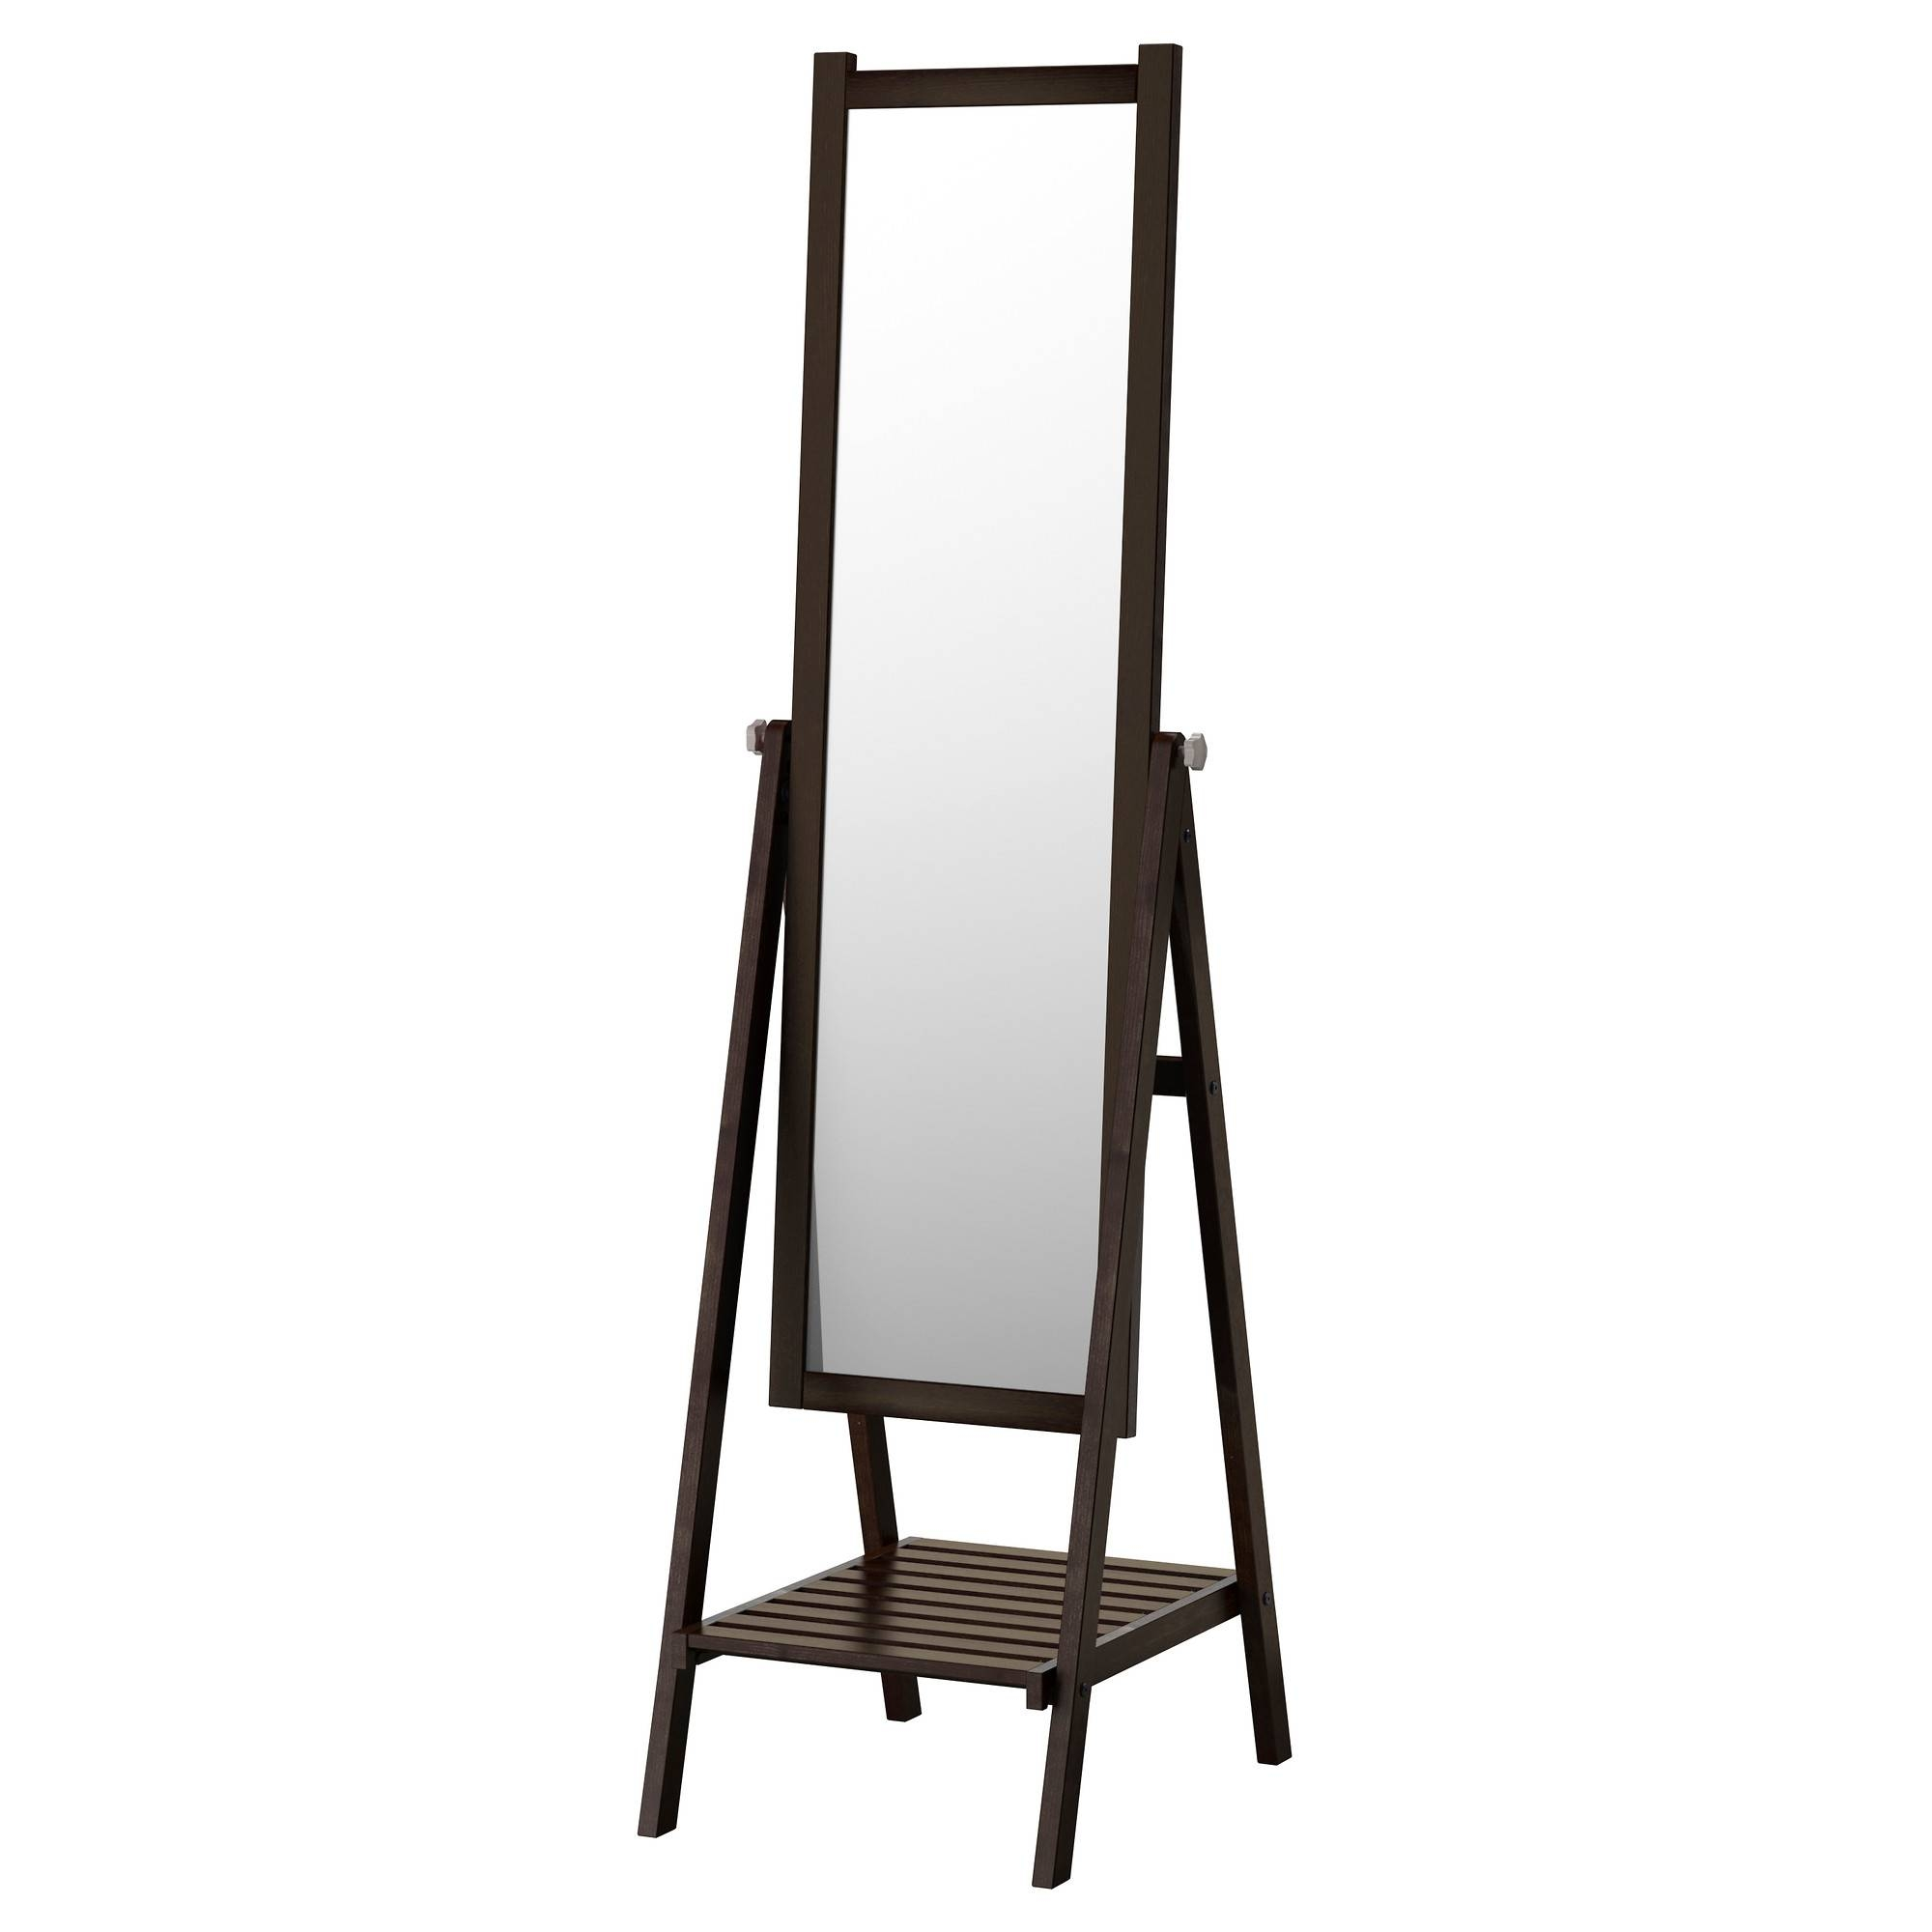 Isfjorden Standing Mirror Black-Brown Stain 47X182 Cm - Ikea inside Long Brown Mirrors (Image 17 of 25)